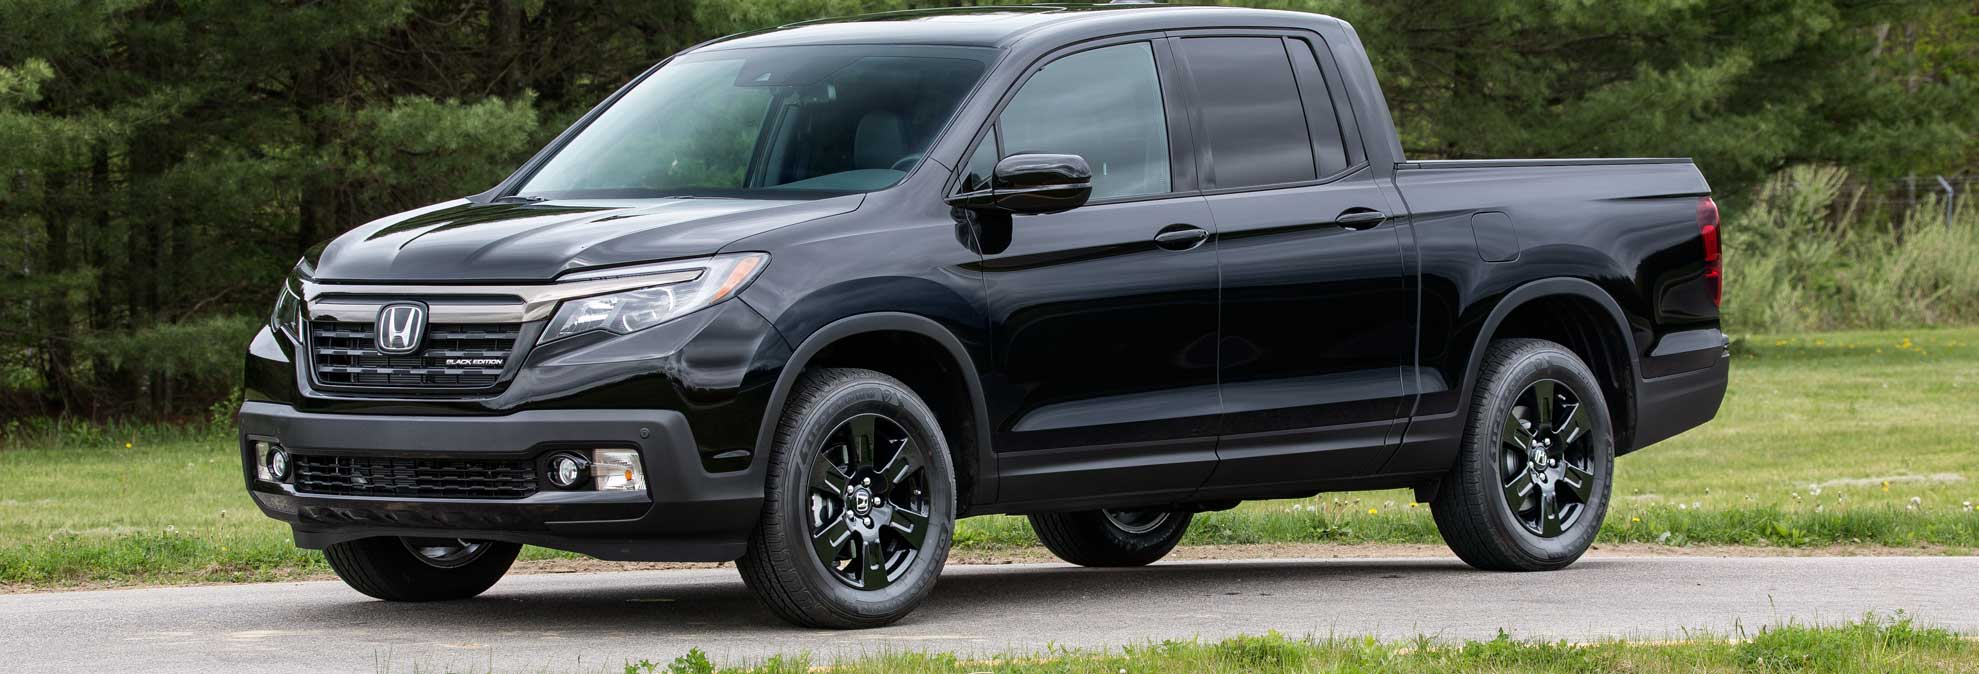 2017 Honda Ridgeline Pickup Looks More Trucky Yet Remains Innovative